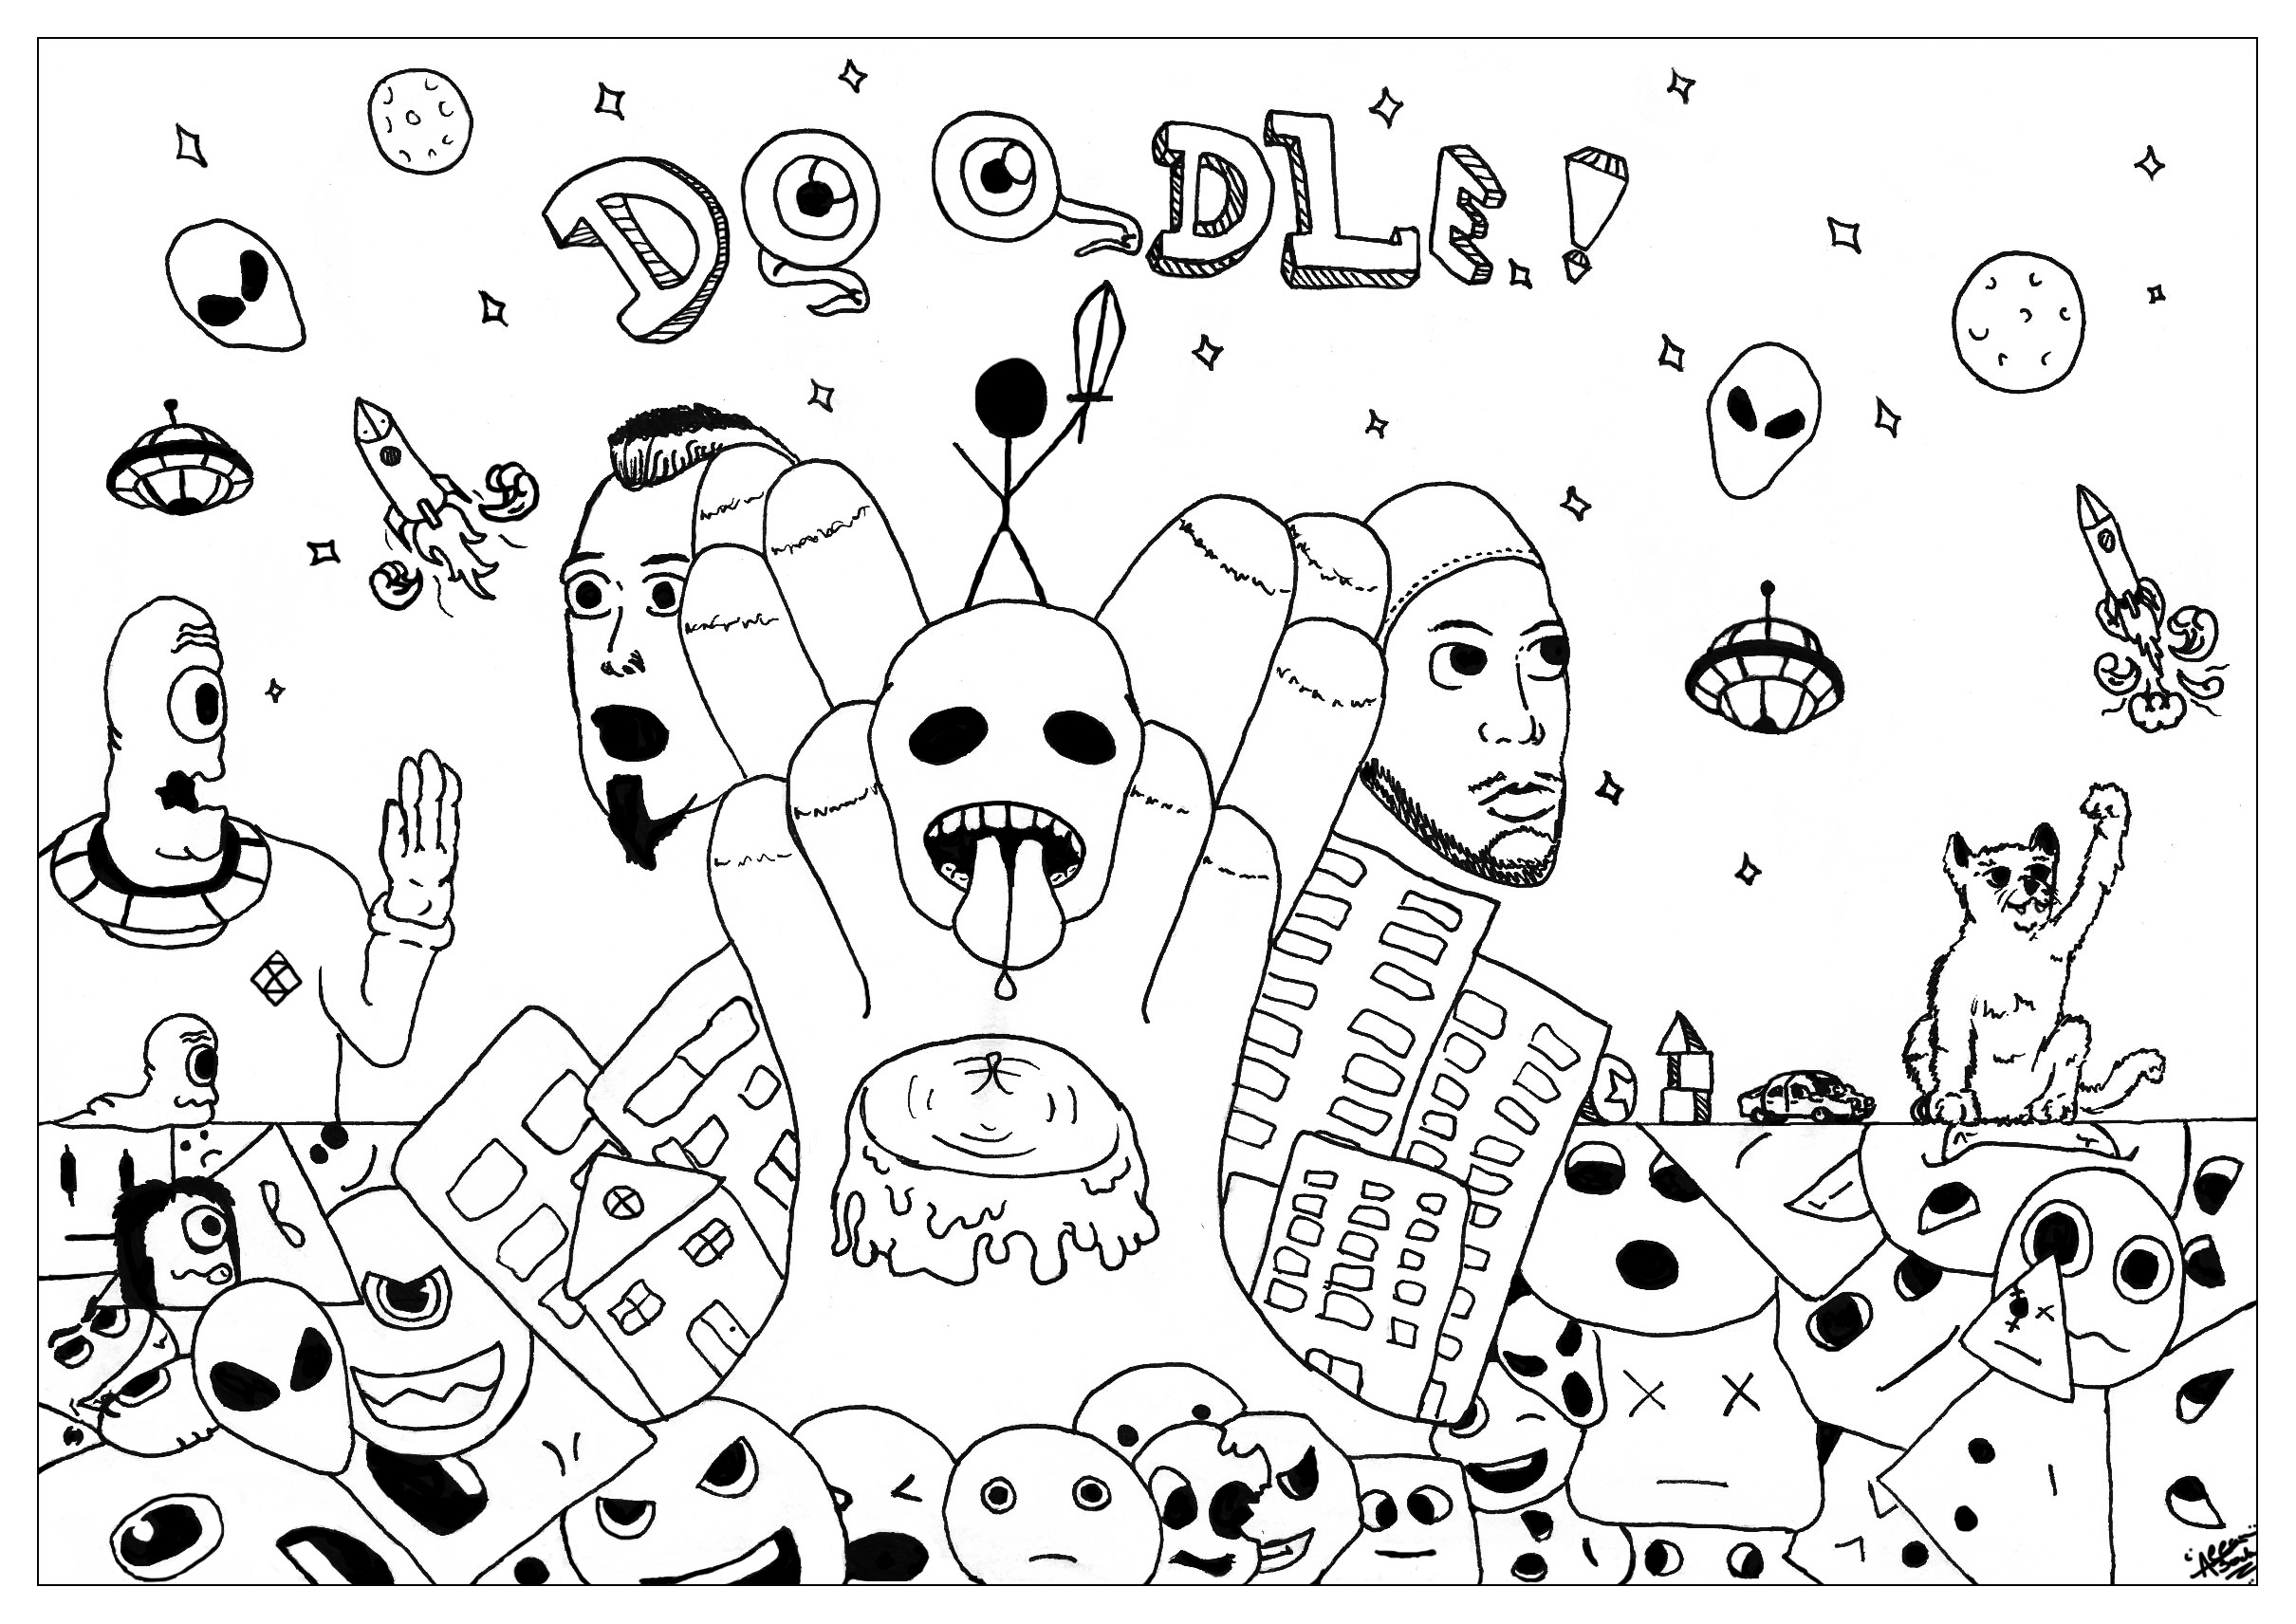 Doodle Allan 2 Doodle Art Doodling Adult Coloring Pages